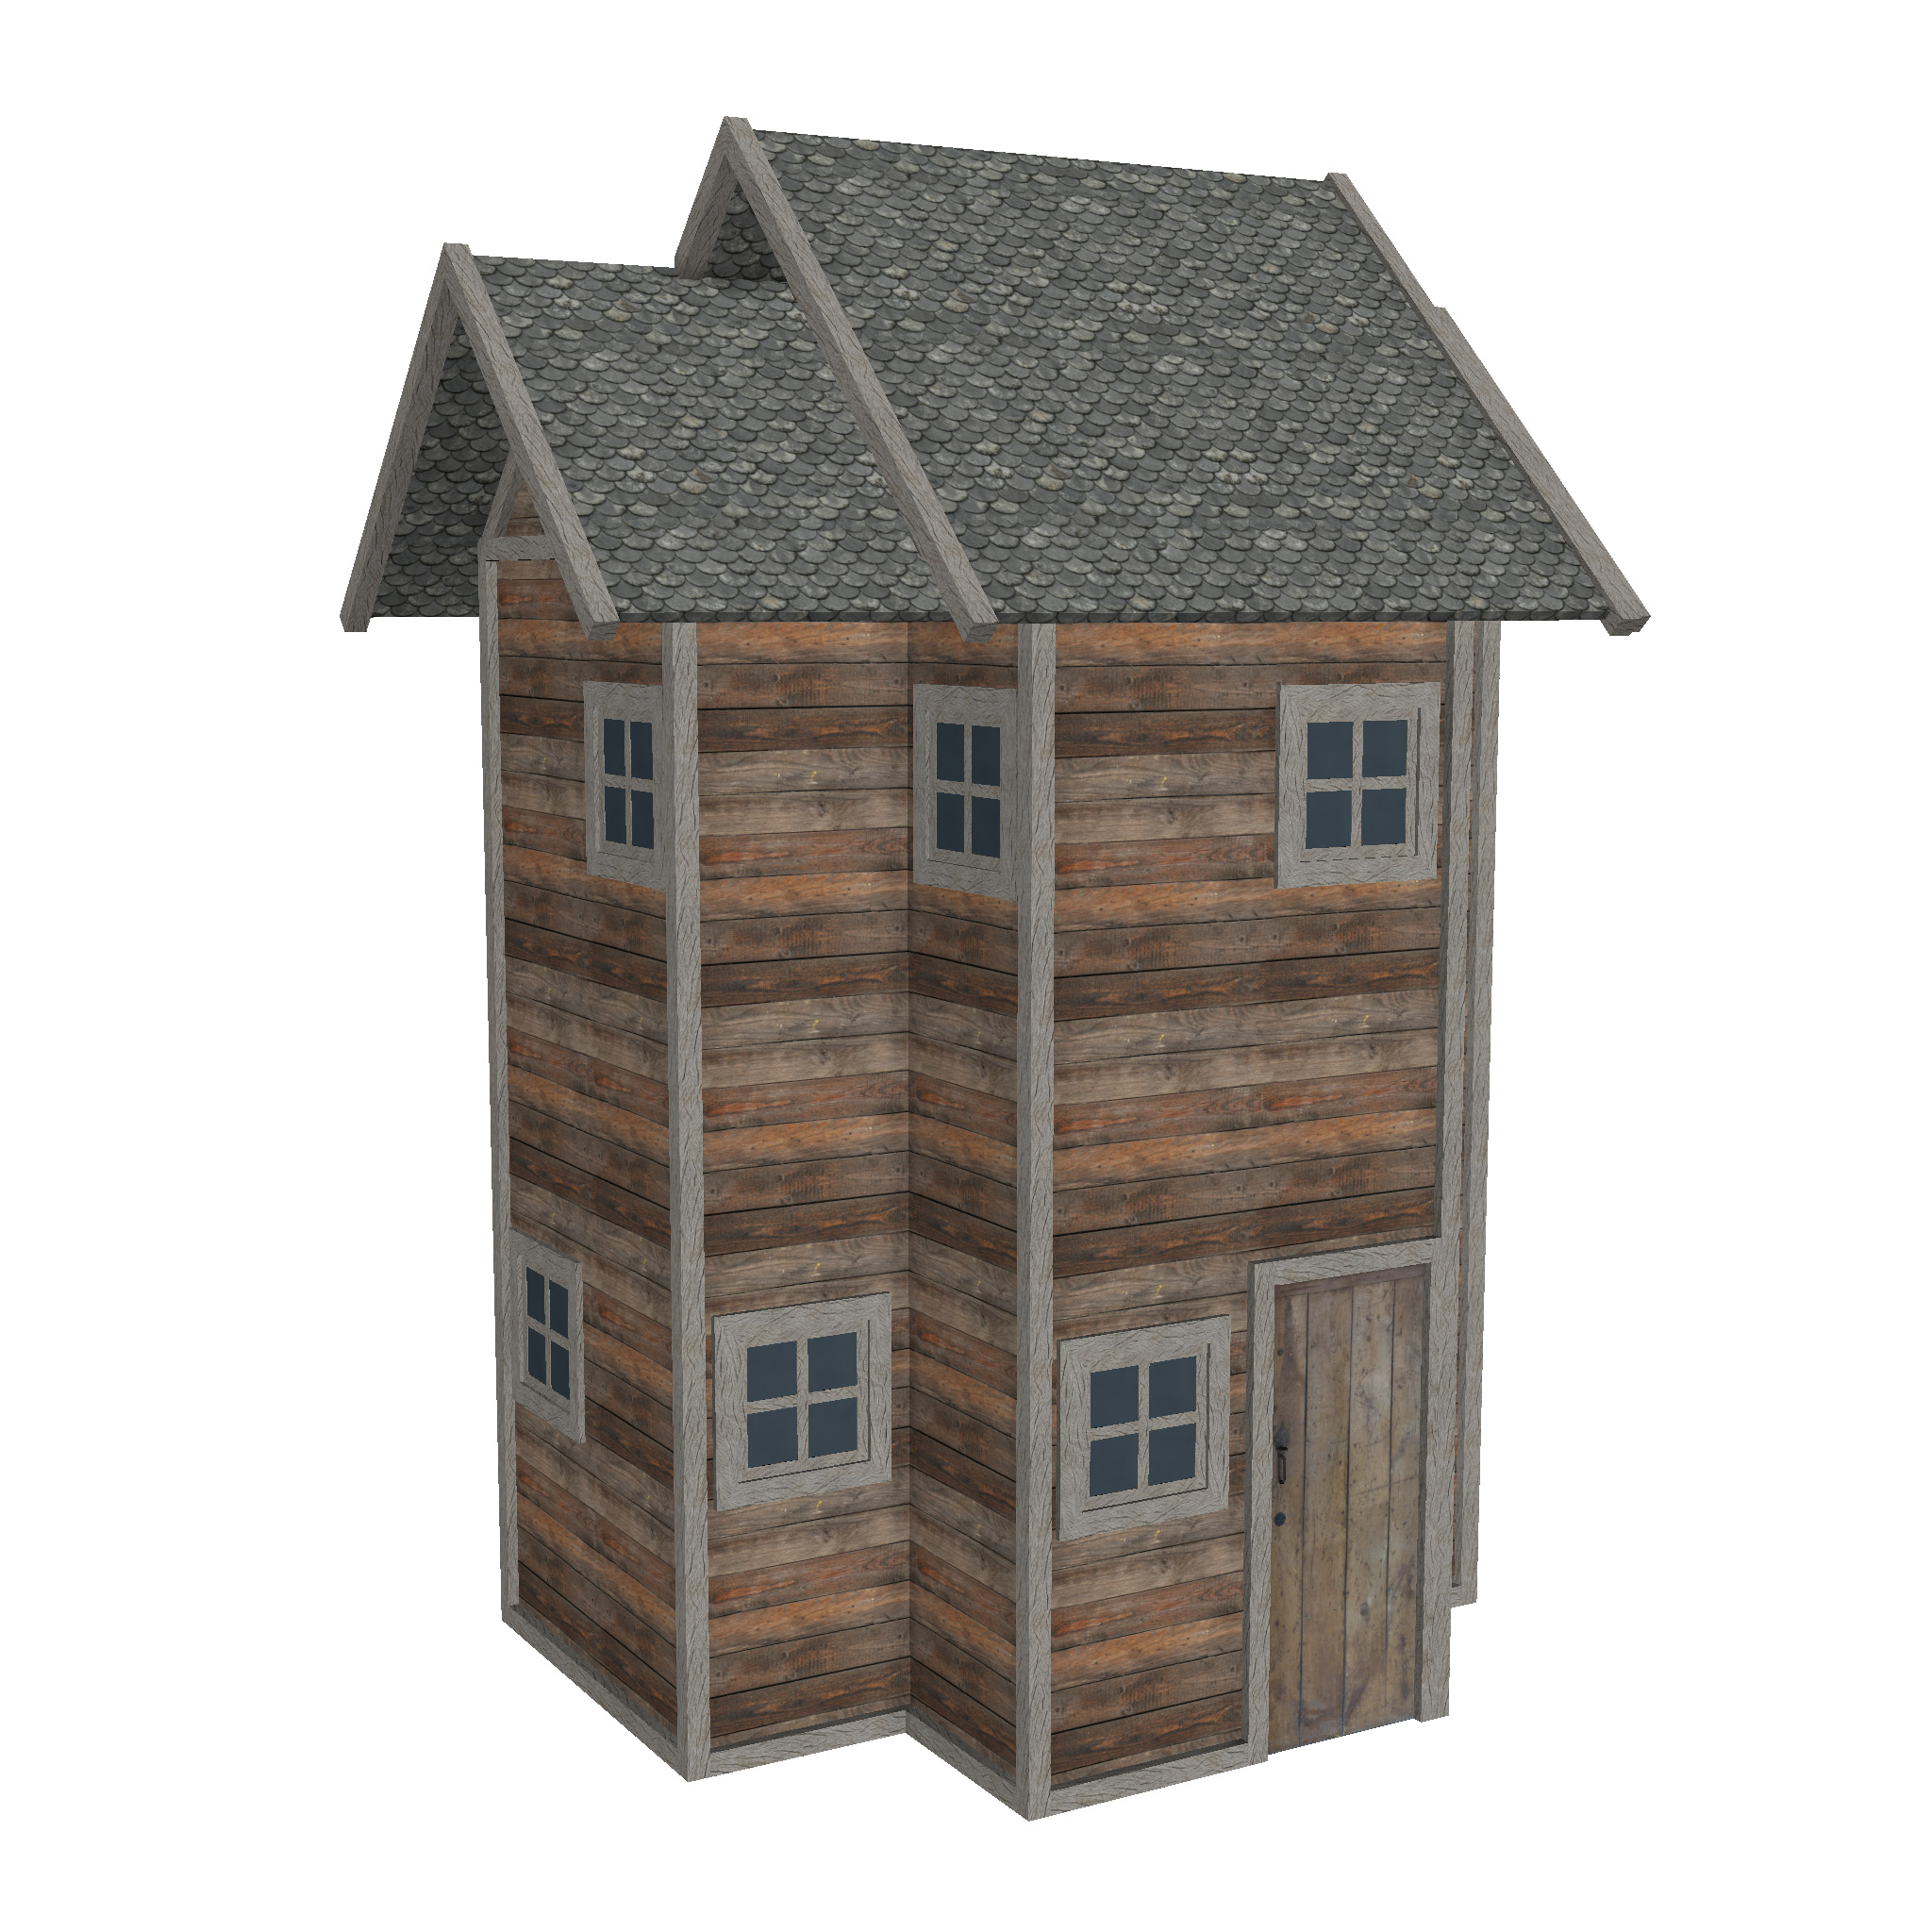 modular wood house set 3d model fbx ma mb 271445